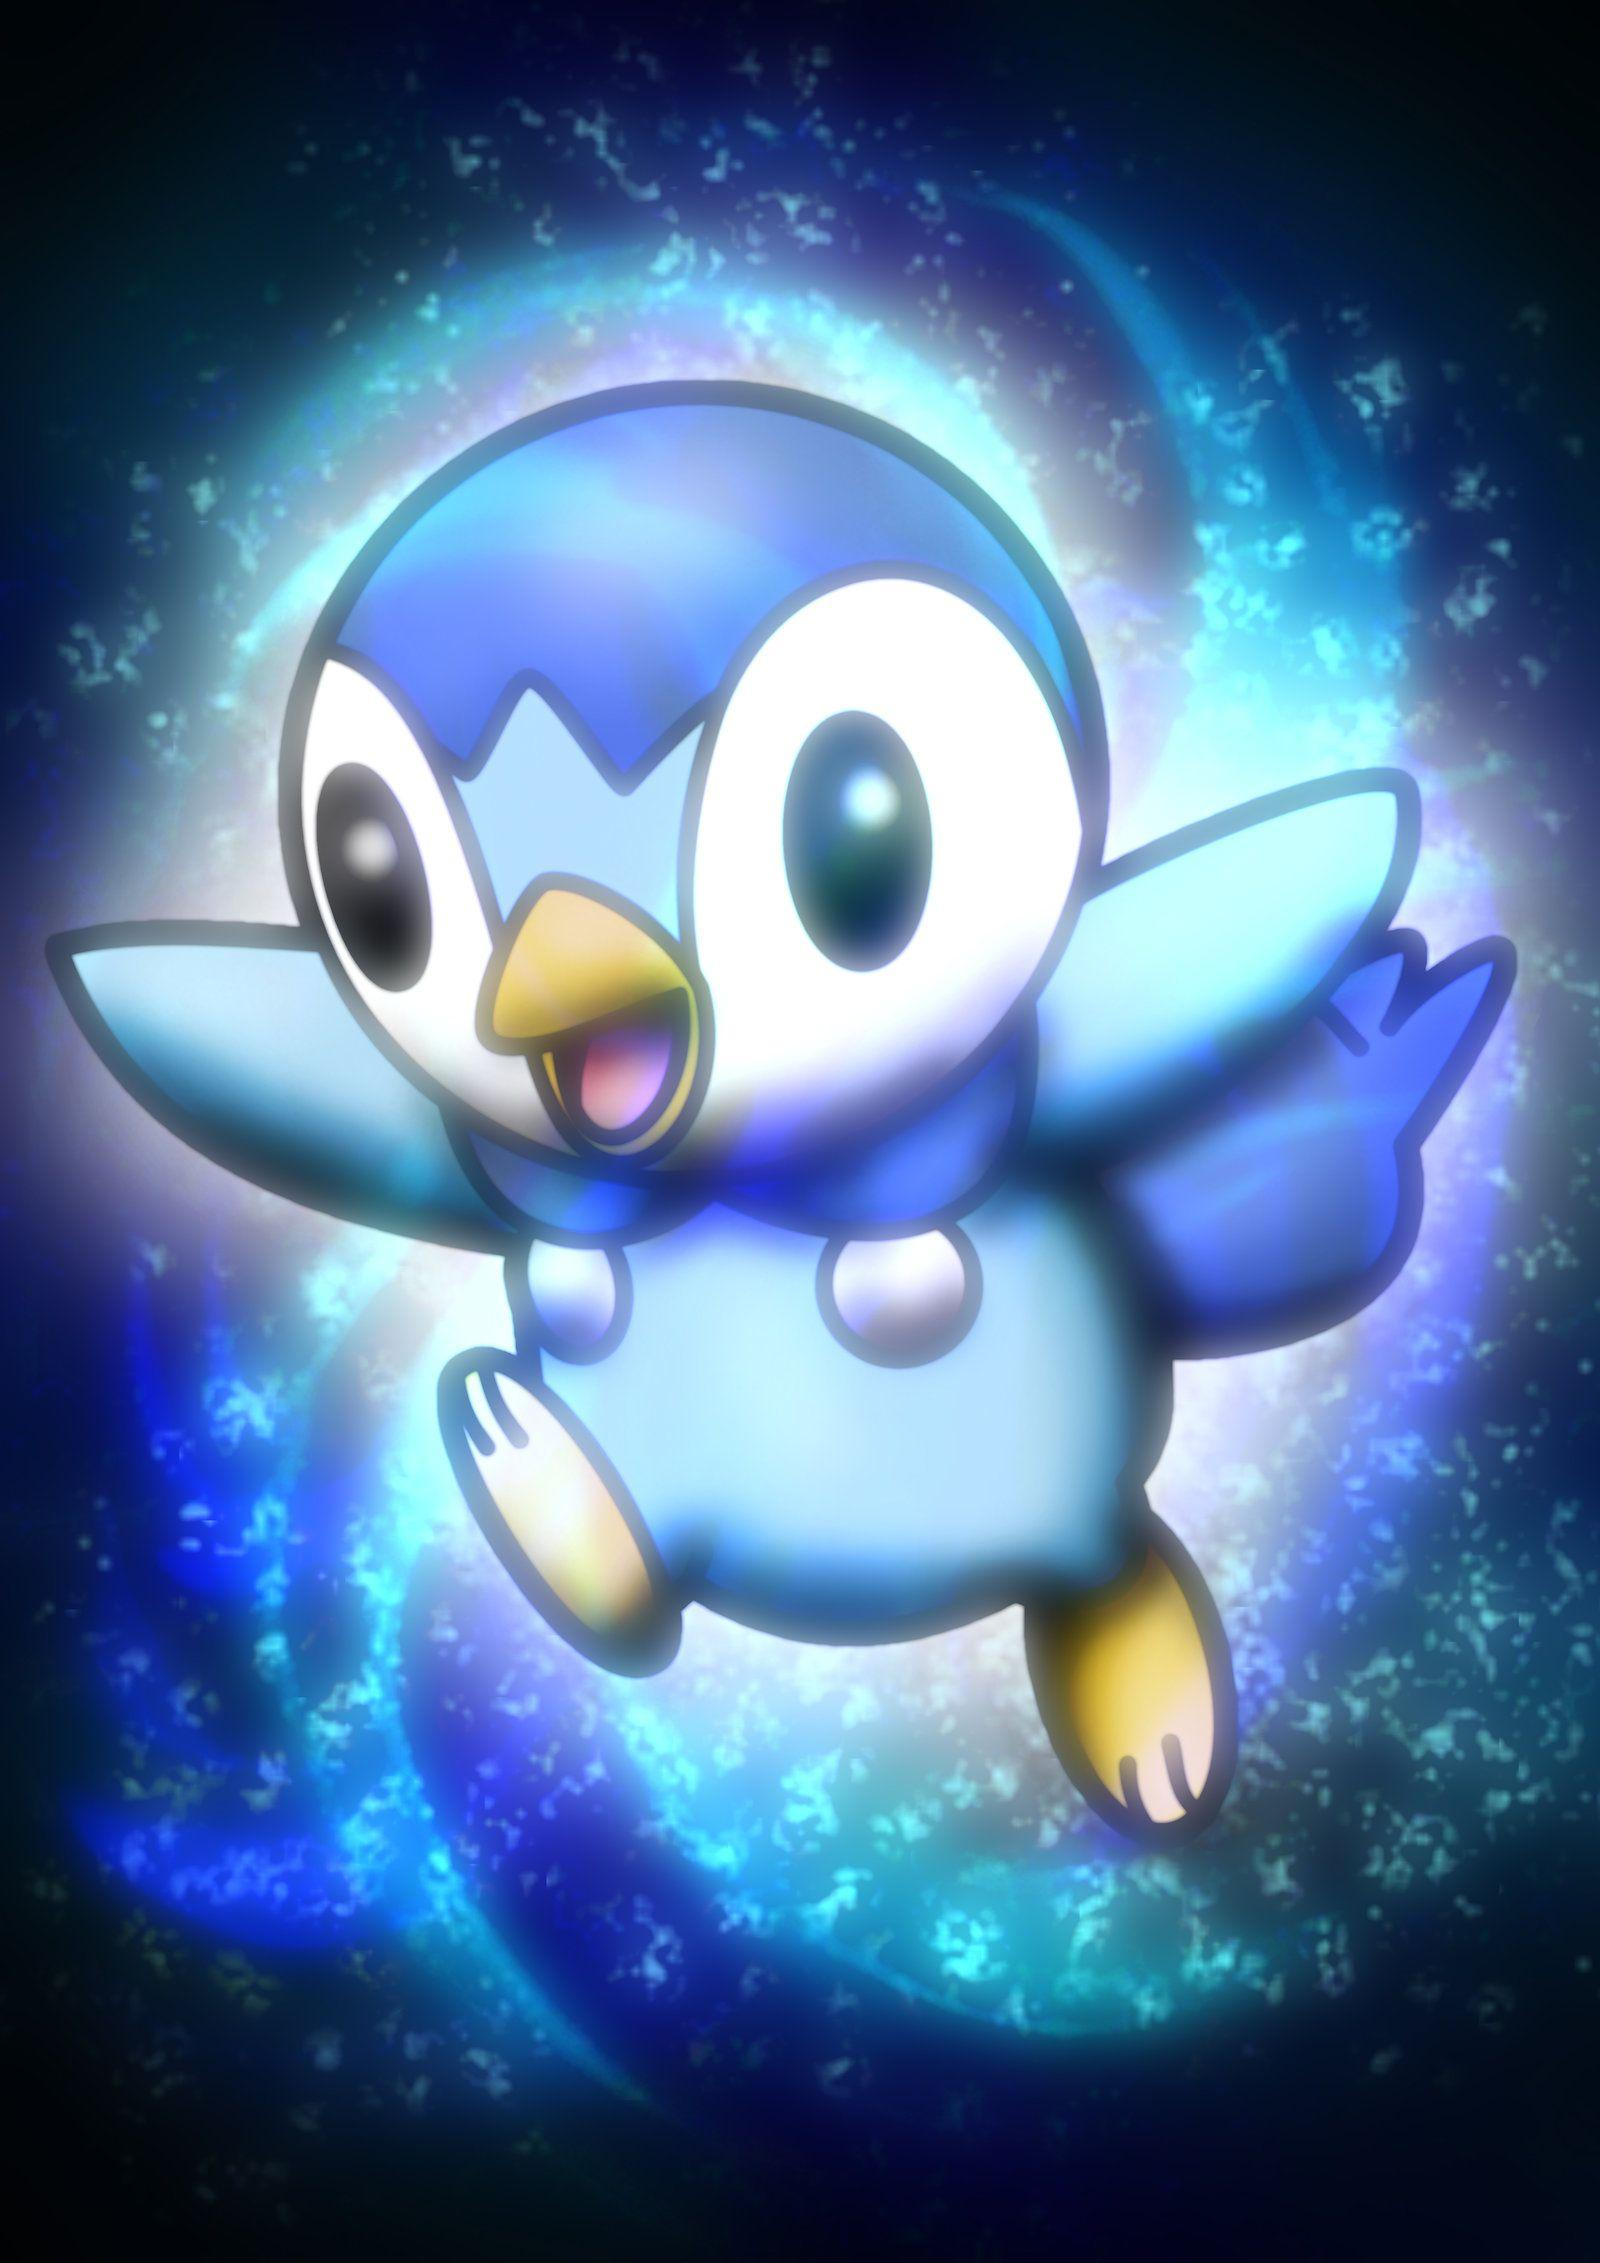 digital : pokemon Piplup 02 2014 by darshan2good on DeviantArt